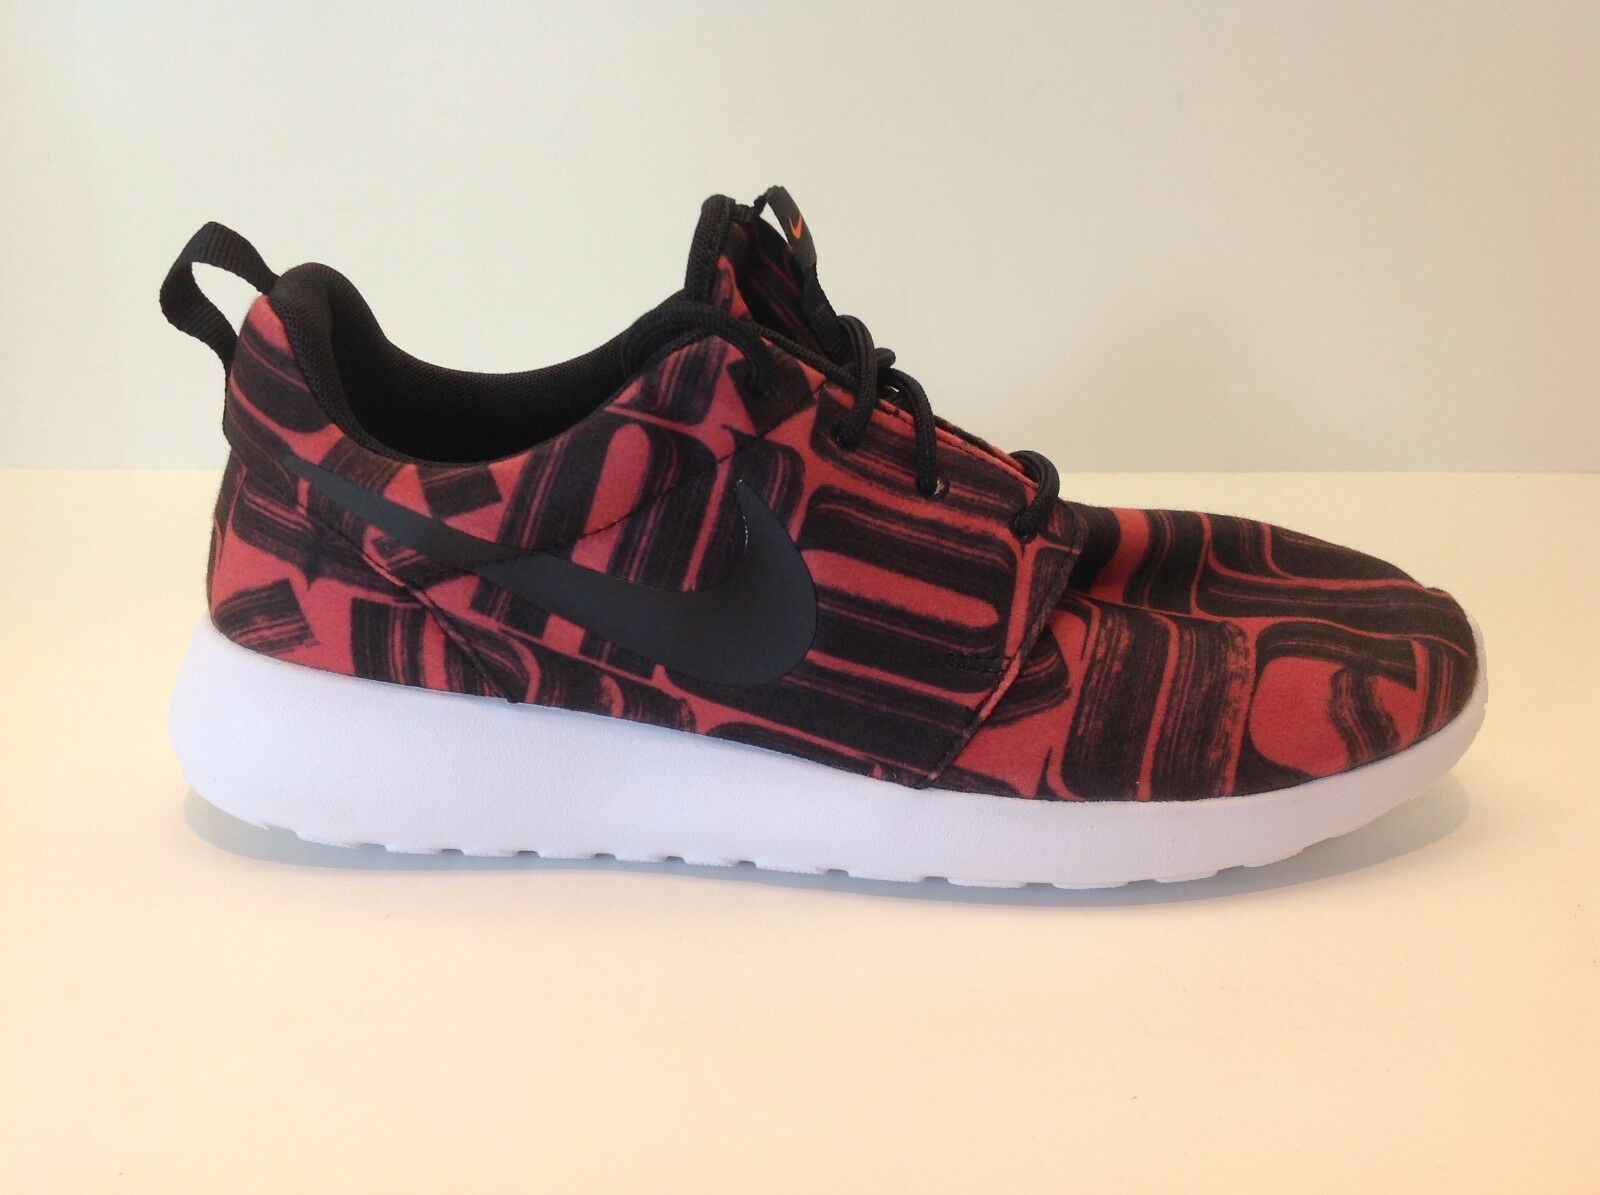 Nike Roshe One Print Women's Size 8-10 New in Box NO Top Lid 844958 800